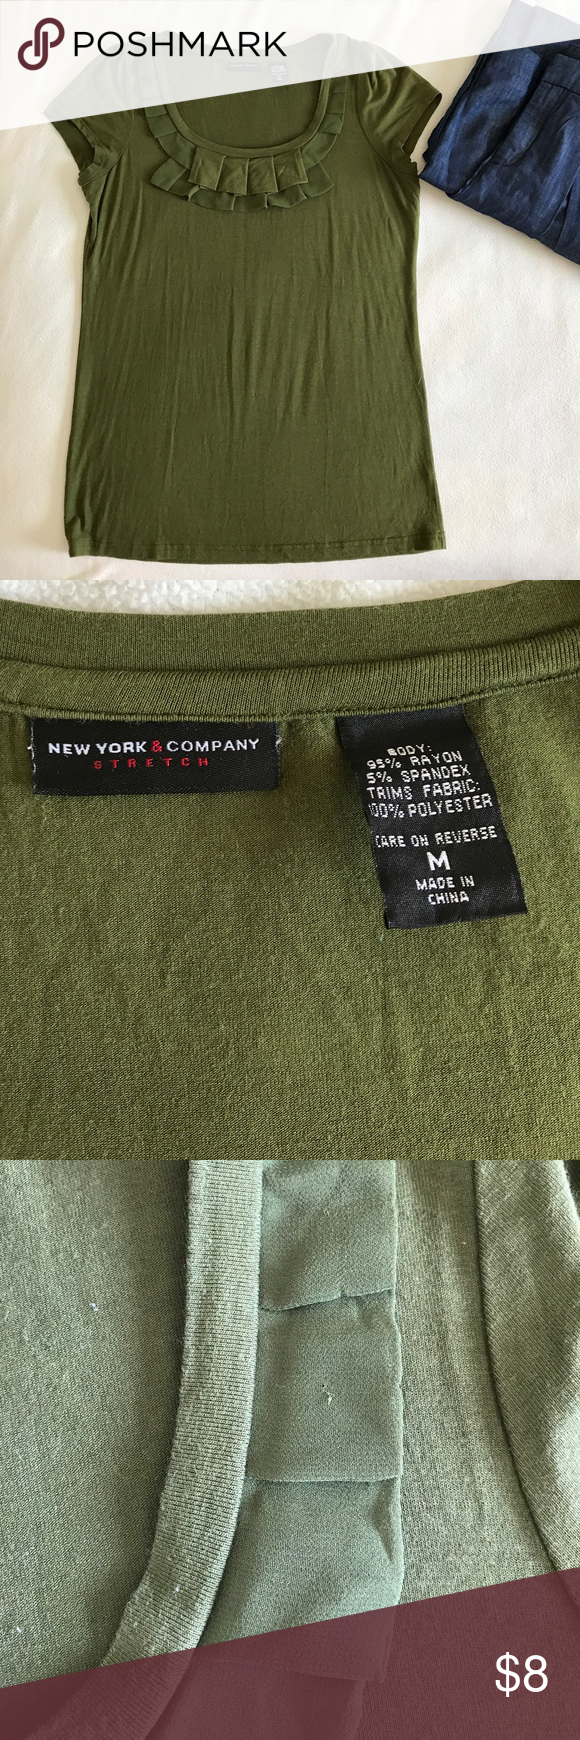 NY&C Cute ruffled Tee. M soft and stretchy Good condition. Mild piling. Price reflects the condition. Cool army green color! New York & Company Tops Tees - Long Sleeve